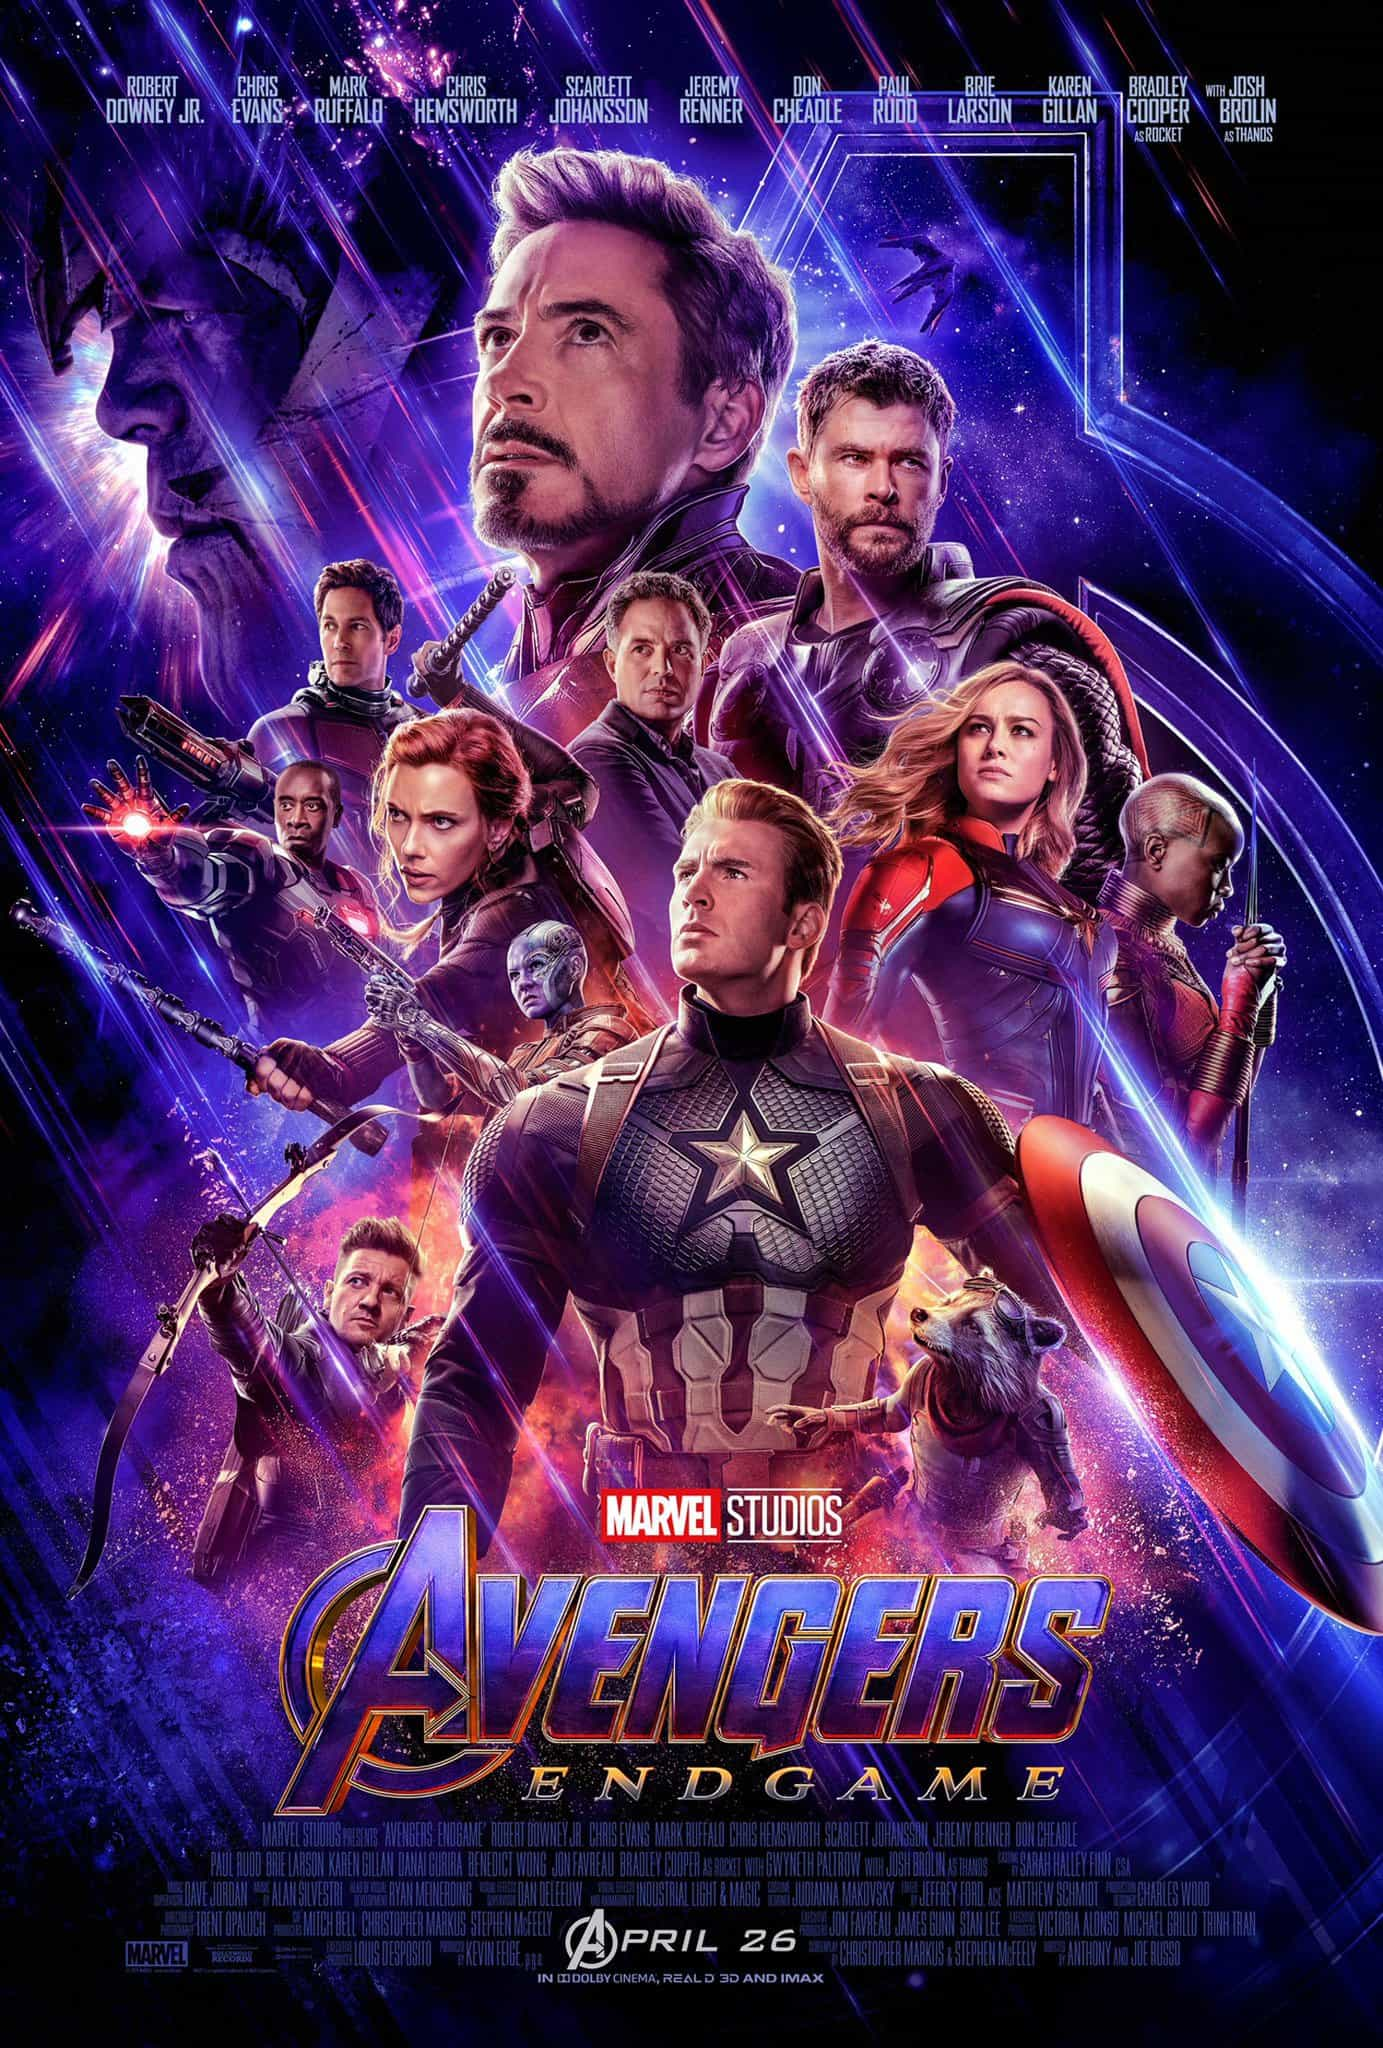 TV spot for Avengers Endgame, 30 seconds of new footage